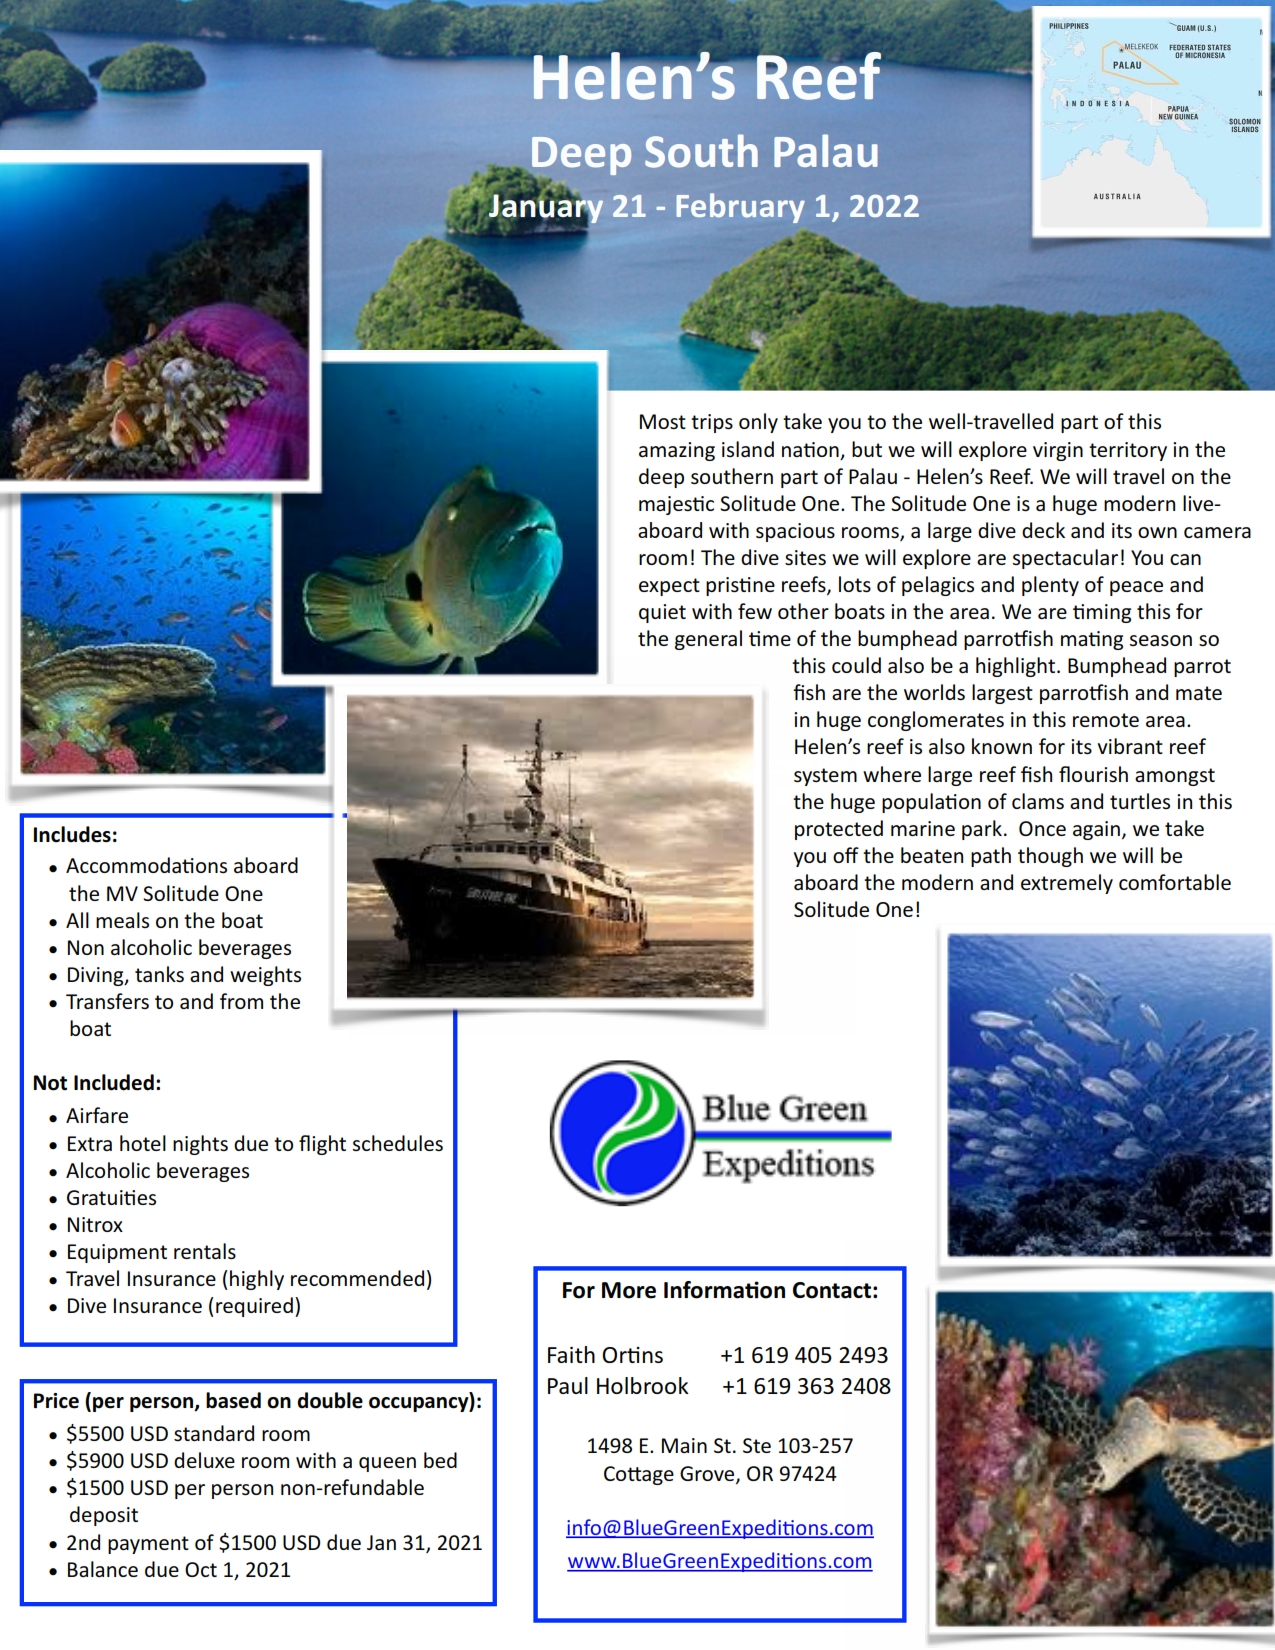 Palau Expedition, January 21 - February 1, 2022. Expedition description and pricing. PDF flyer contains the same information.